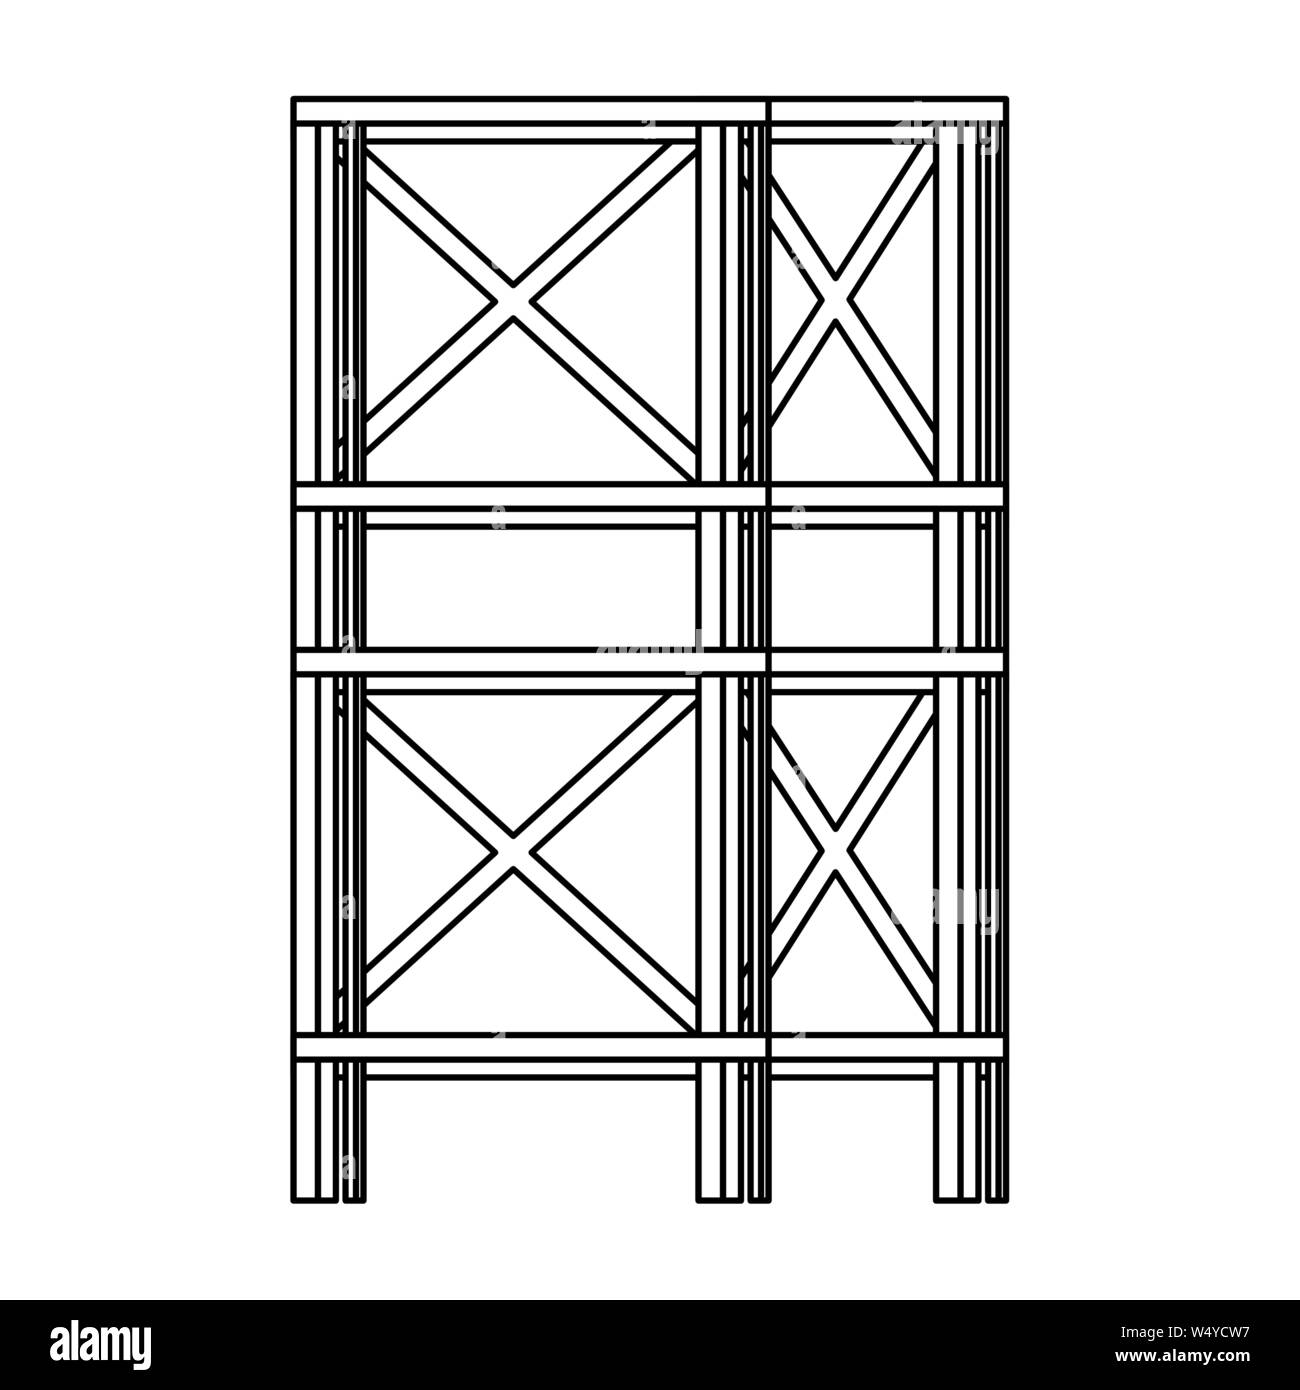 construction architecture engineering industrial cartoon in black and white Stock Vector